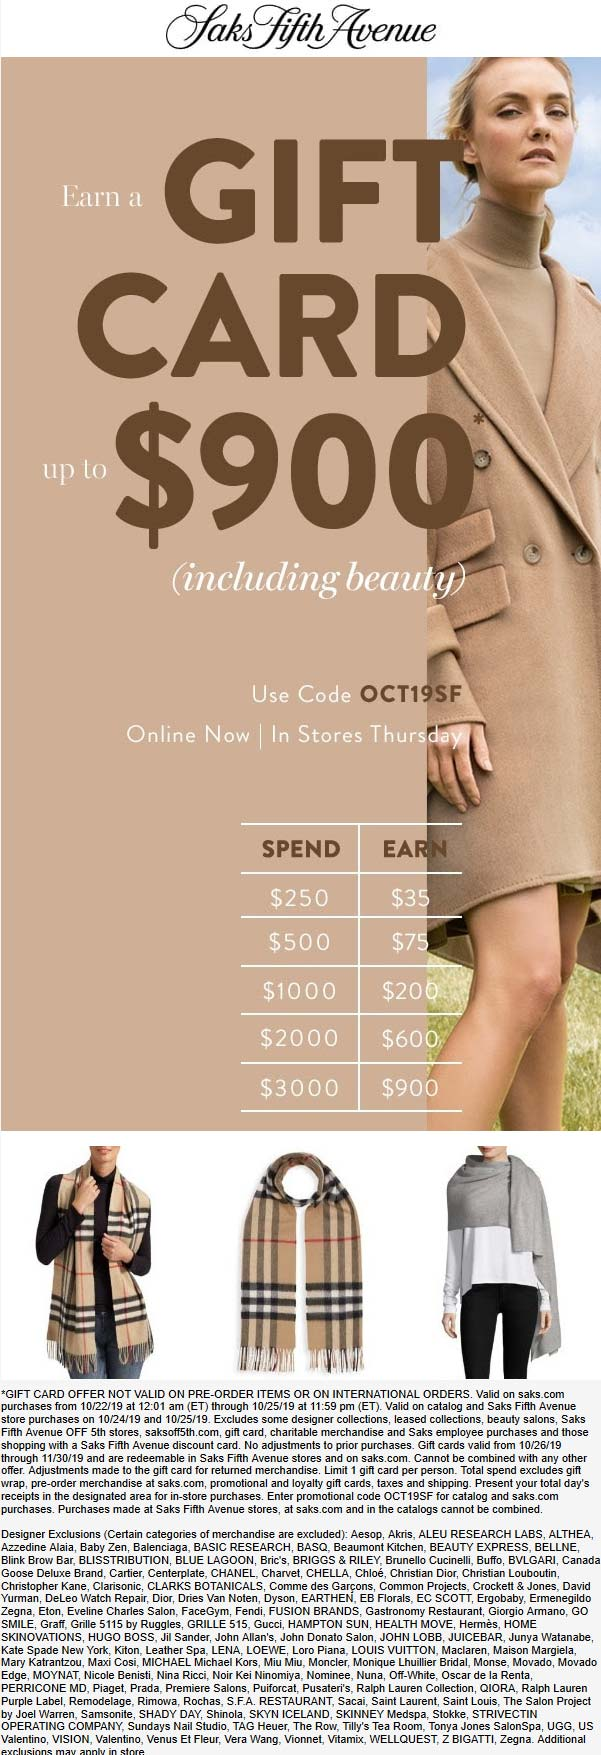 Saks Fifth Avenue coupons & promo code for [August 2020]